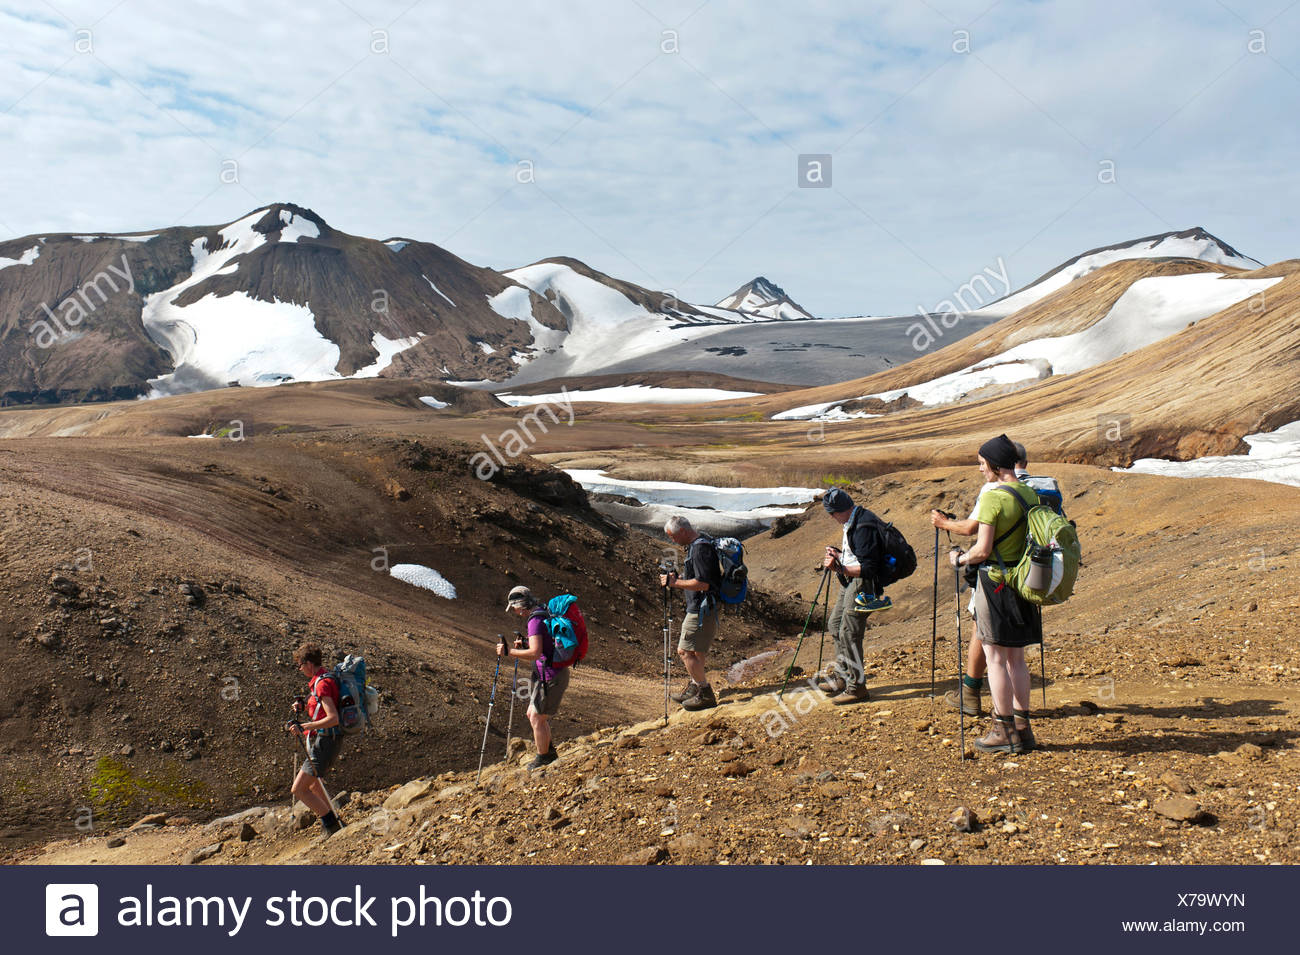 Trekking in the highlands, hiking group travelling downhill in single file, mountain landscape, glaciers and snowfields - Stock Image